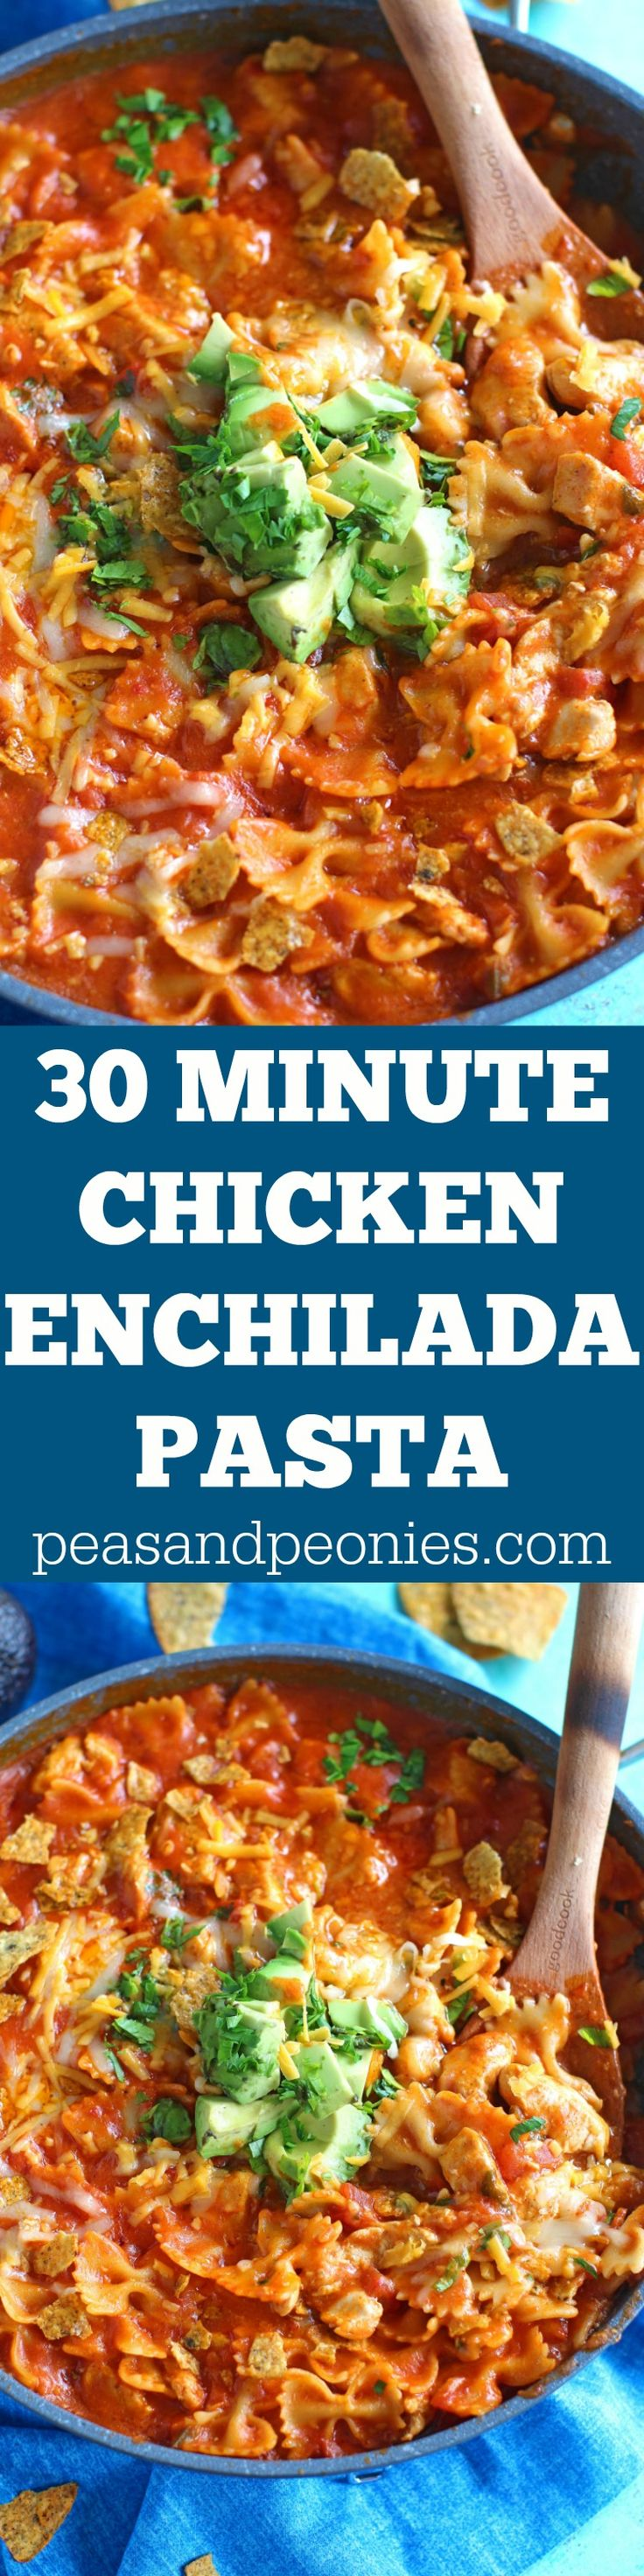 Chicken Enchilada Pasta is a hearty, easy and delicious weeknight meal, made with just a few ingredients and ready in 30 minutes.